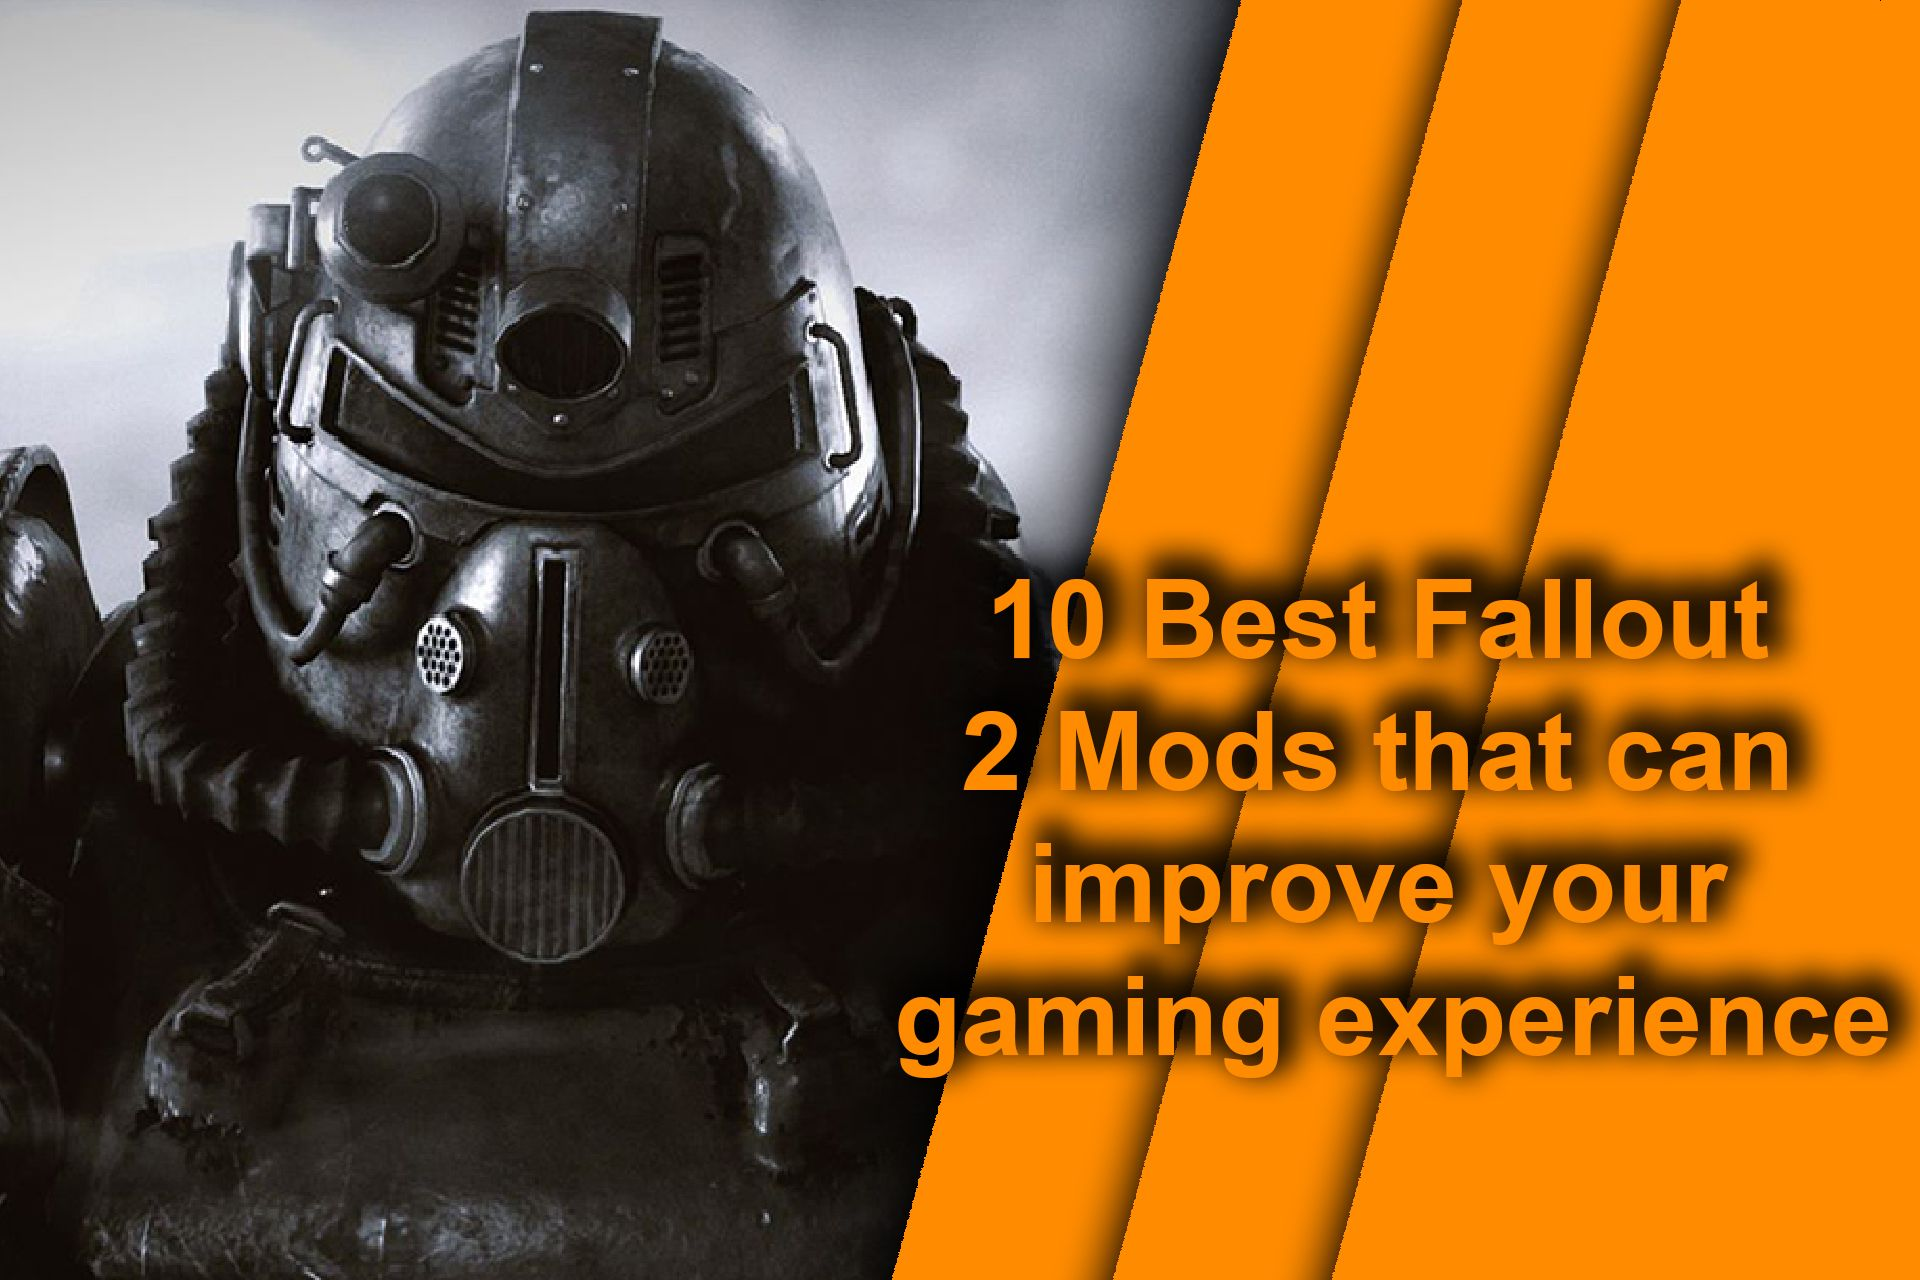 10 Best Fallout 2 Mods that can improve your gaming experience